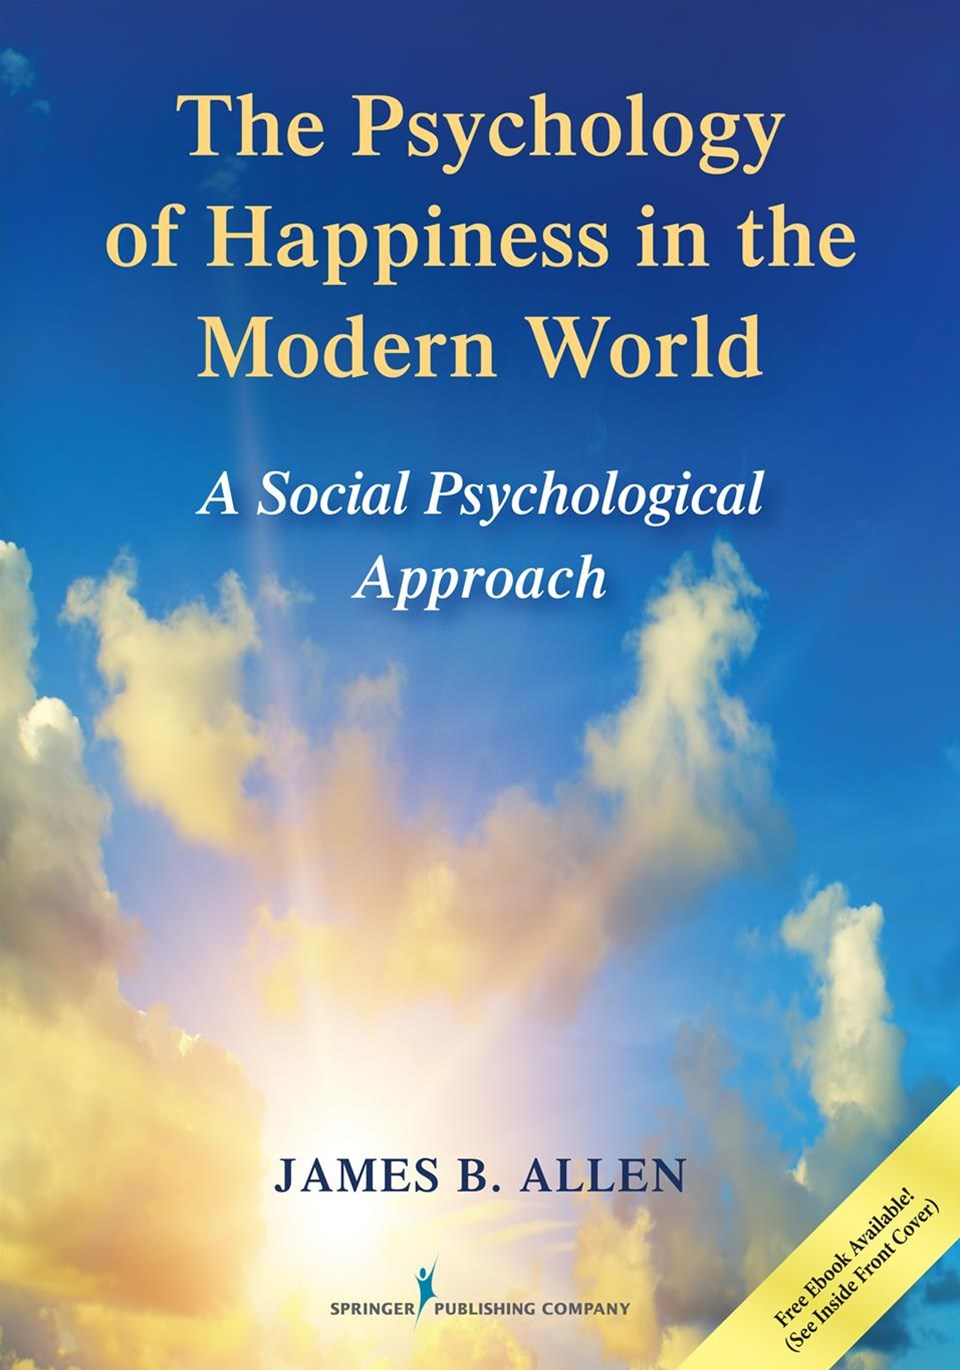 Psychology of Happiness in the Modern World: A Social Psychological Approach